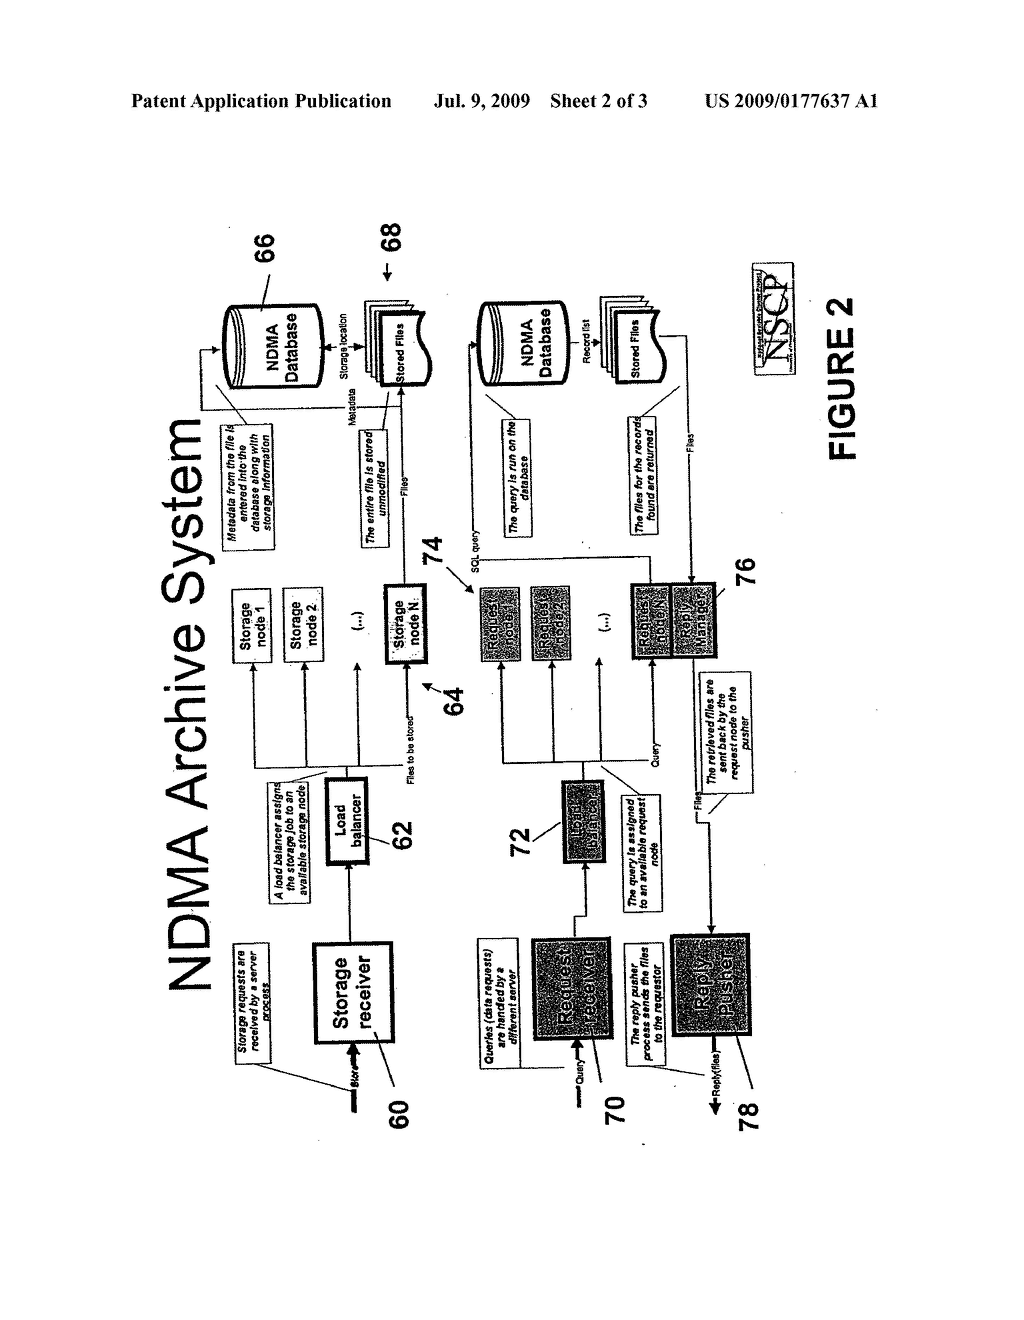 hight resolution of ndma db schema dicom to relational schema translation and xml to sql query translation diagram schematic and image 03